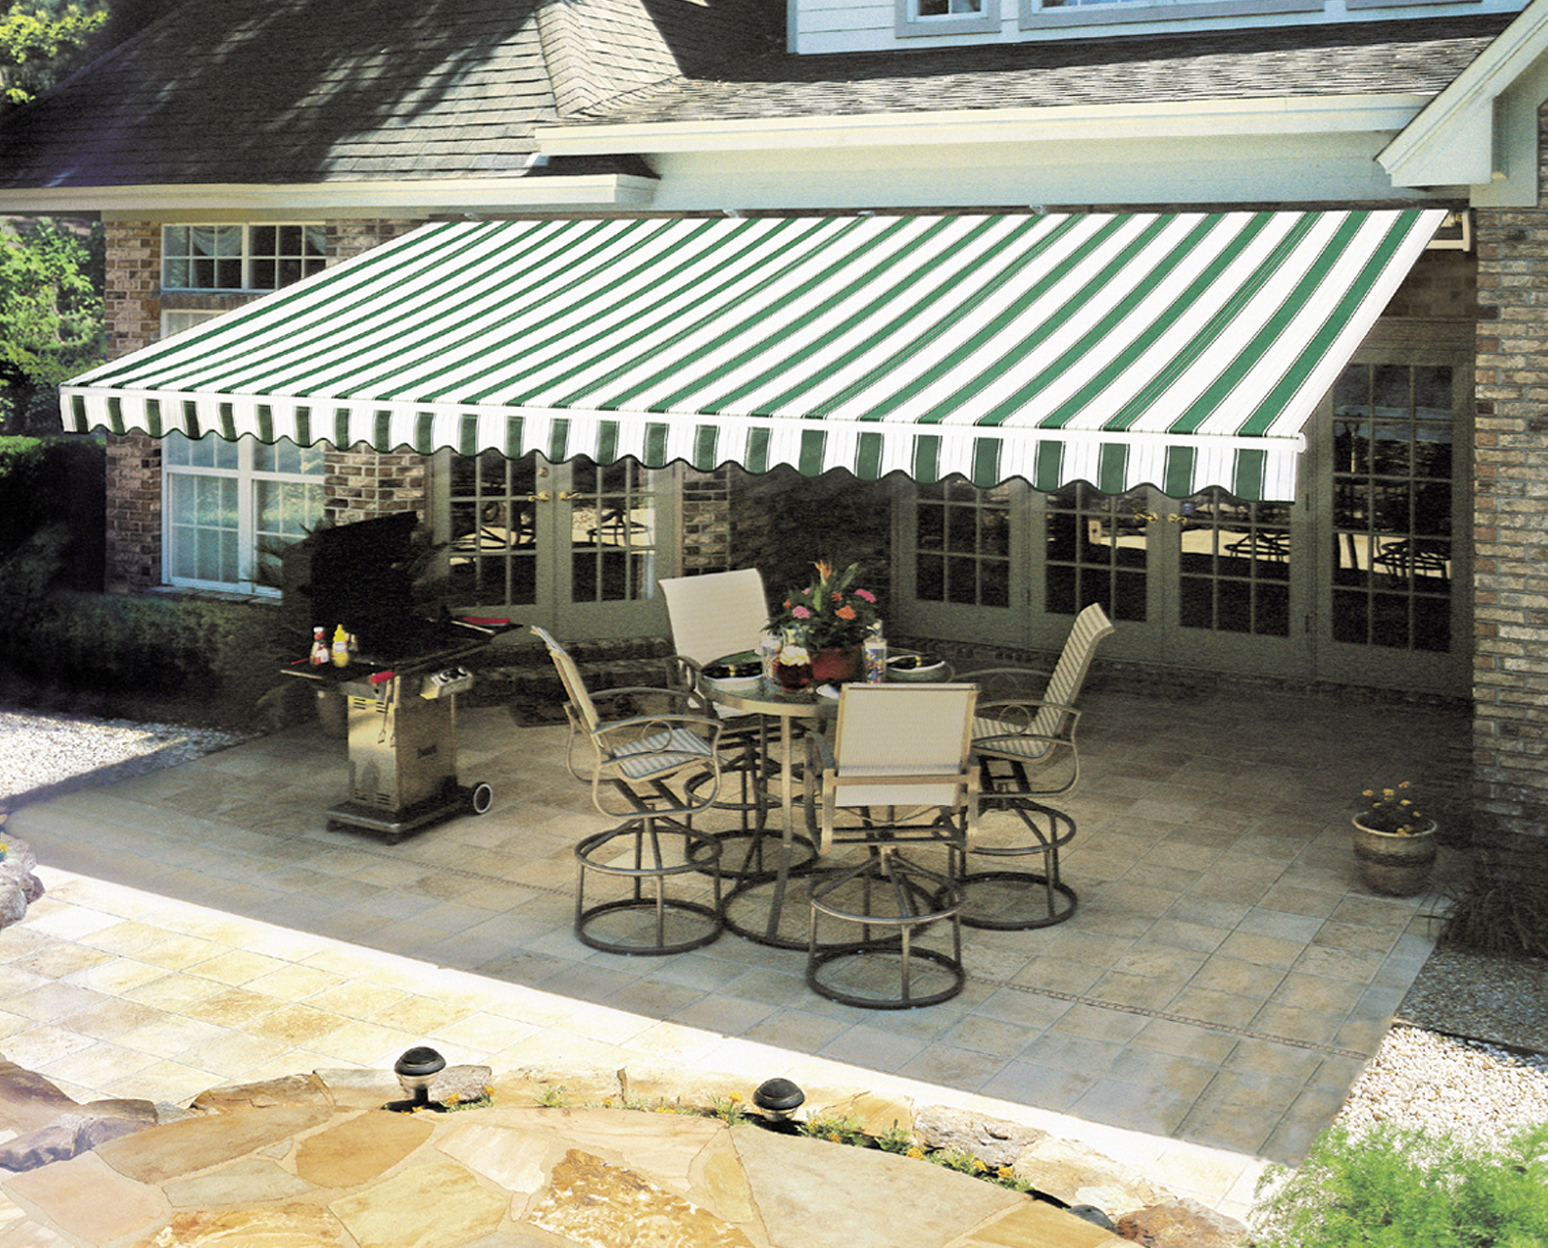 patio brilliant retractable patios awning youtube for awnings ideas color fantastic fabulous alekoa cheap bunch out burgundy luxury outdoor x decks aleko of